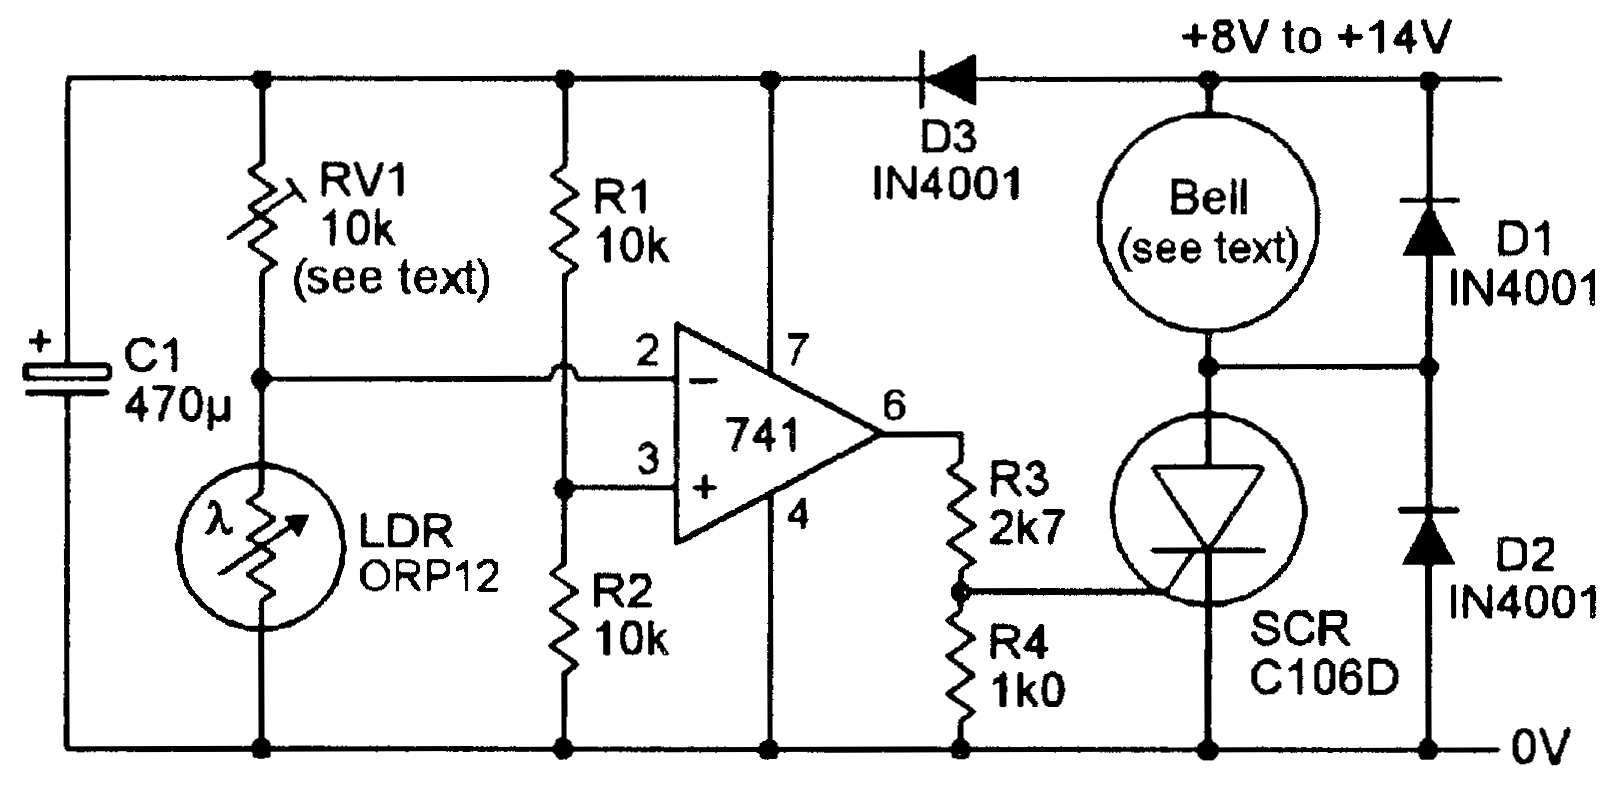 Electronic Circuits Can Remove These Difficulties Circuit Diagram Light Sensitive Nuts Volts Magazine A Bell Output Ldr Alarm